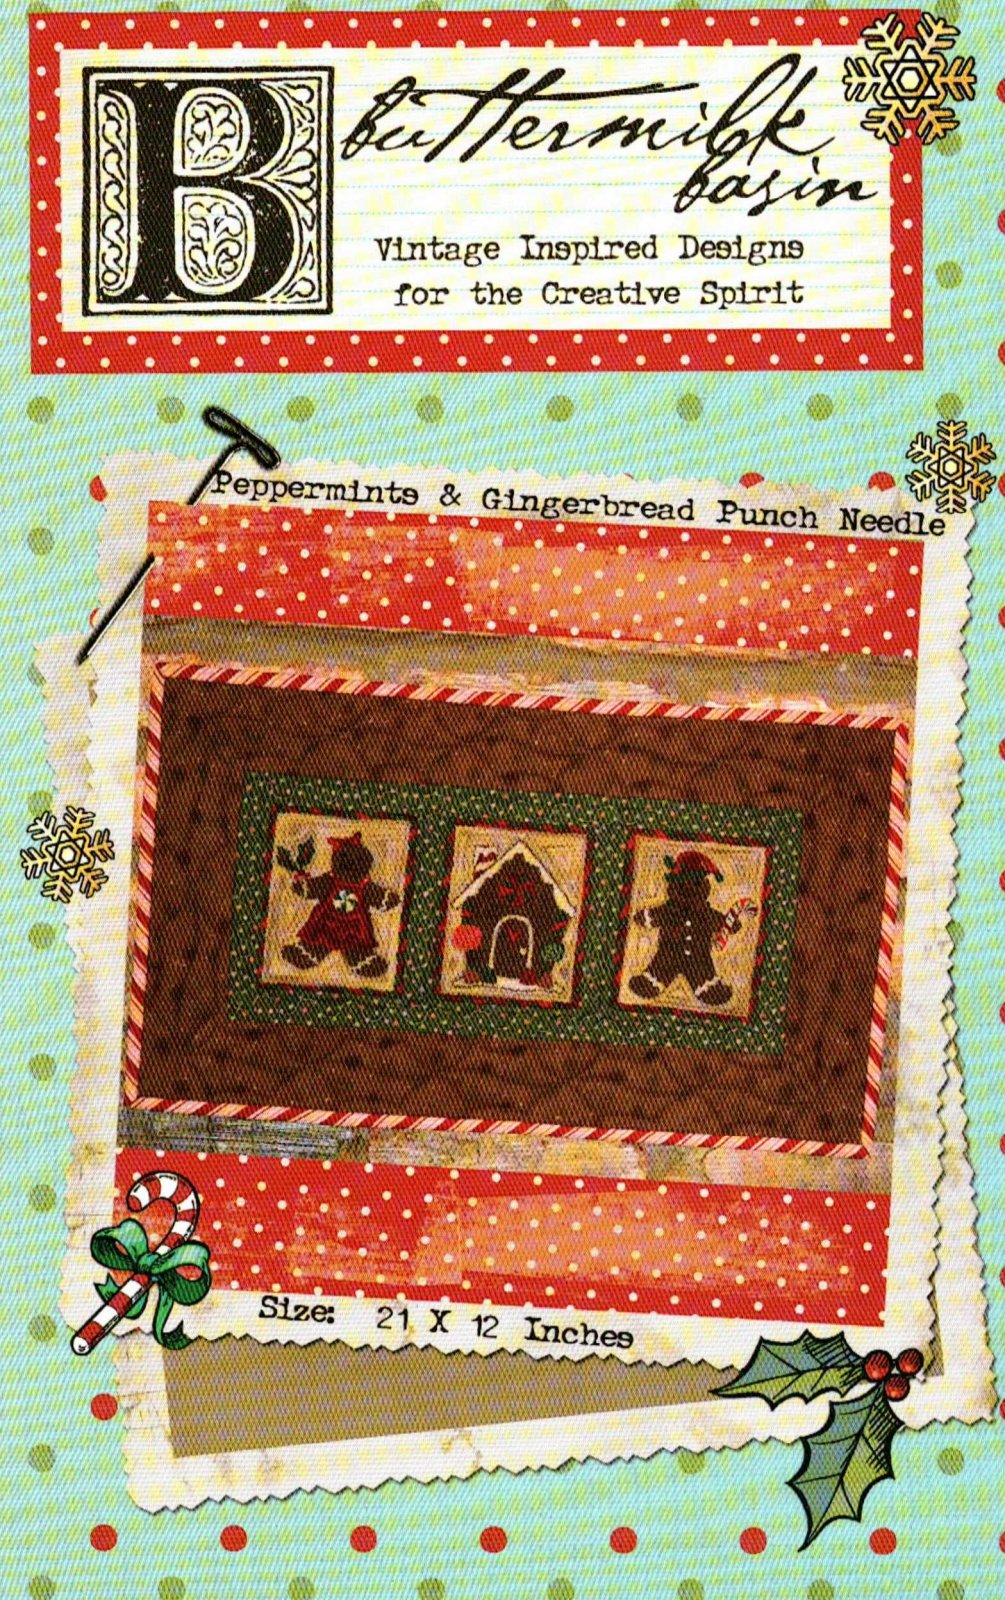 Peppermints & Gingerbread Punch Needle * Pattern